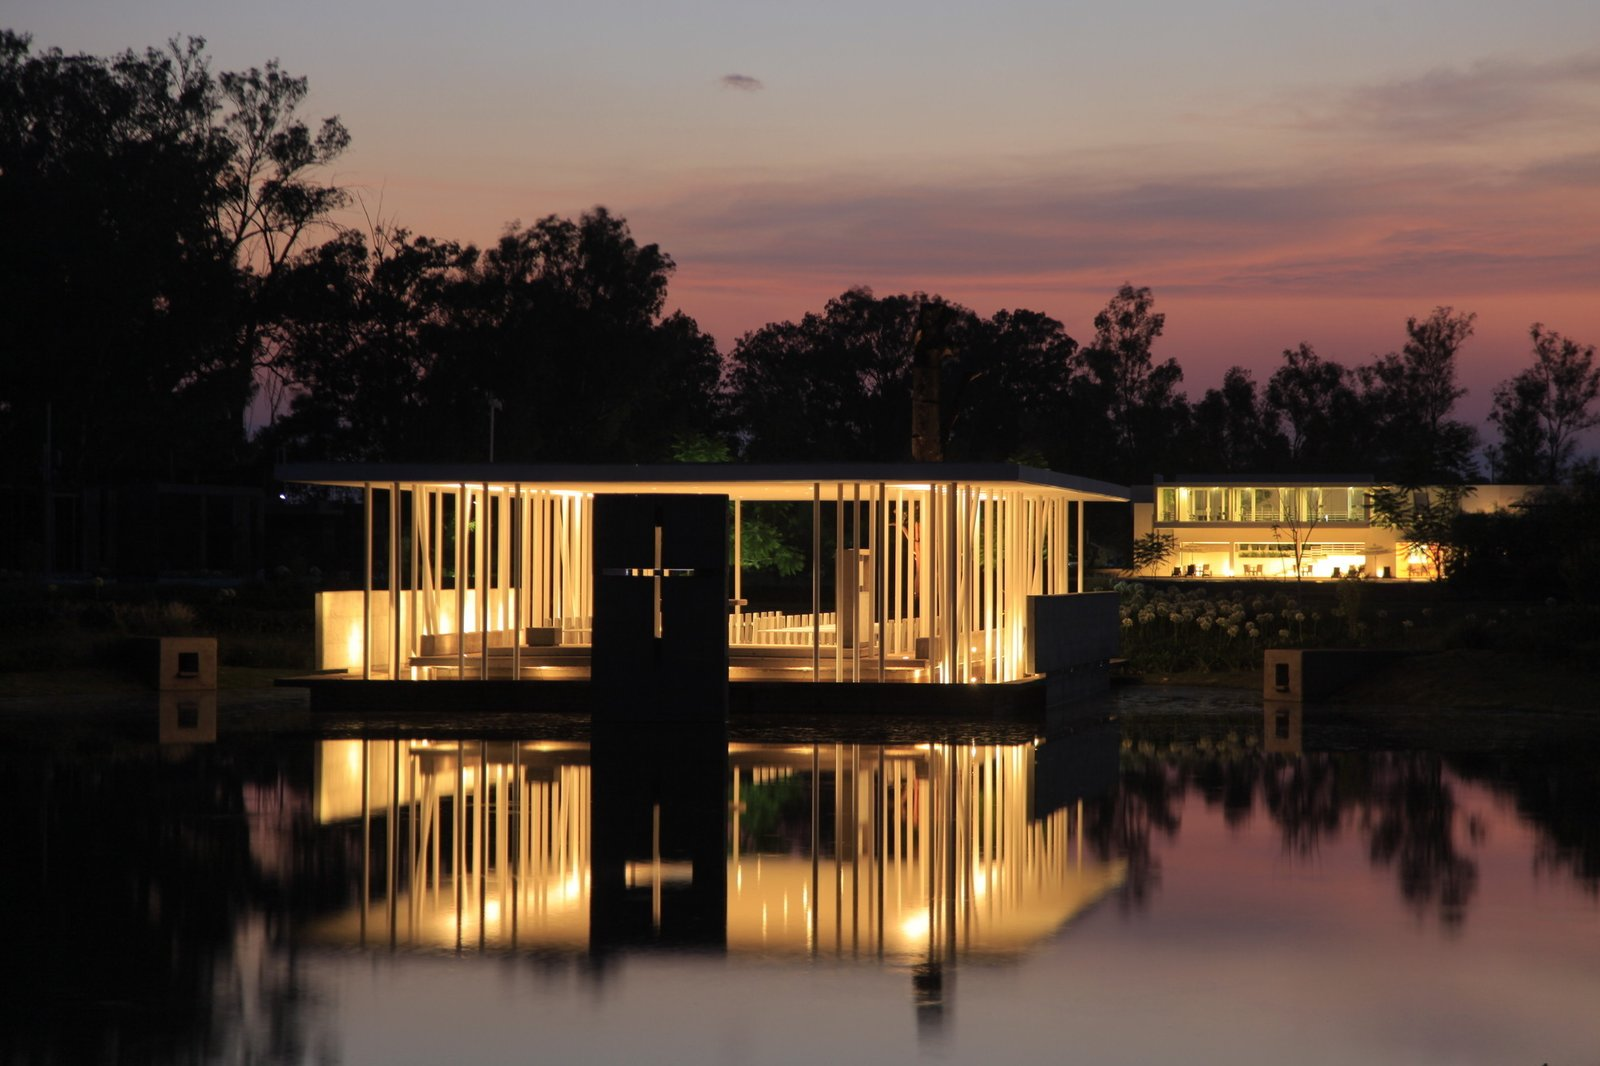 Di Vece Arquitectos, Capilla del Lago (2010)   Working on a slightly smaller scale, this waterfront, open-air structure in Michoacán, Mexico, boasts supports that function like a cluster of votives at night.  Photo courtesy Di Vece Arquitectos  Photo 9 of 10 in 10 Inspiring Modern Churches